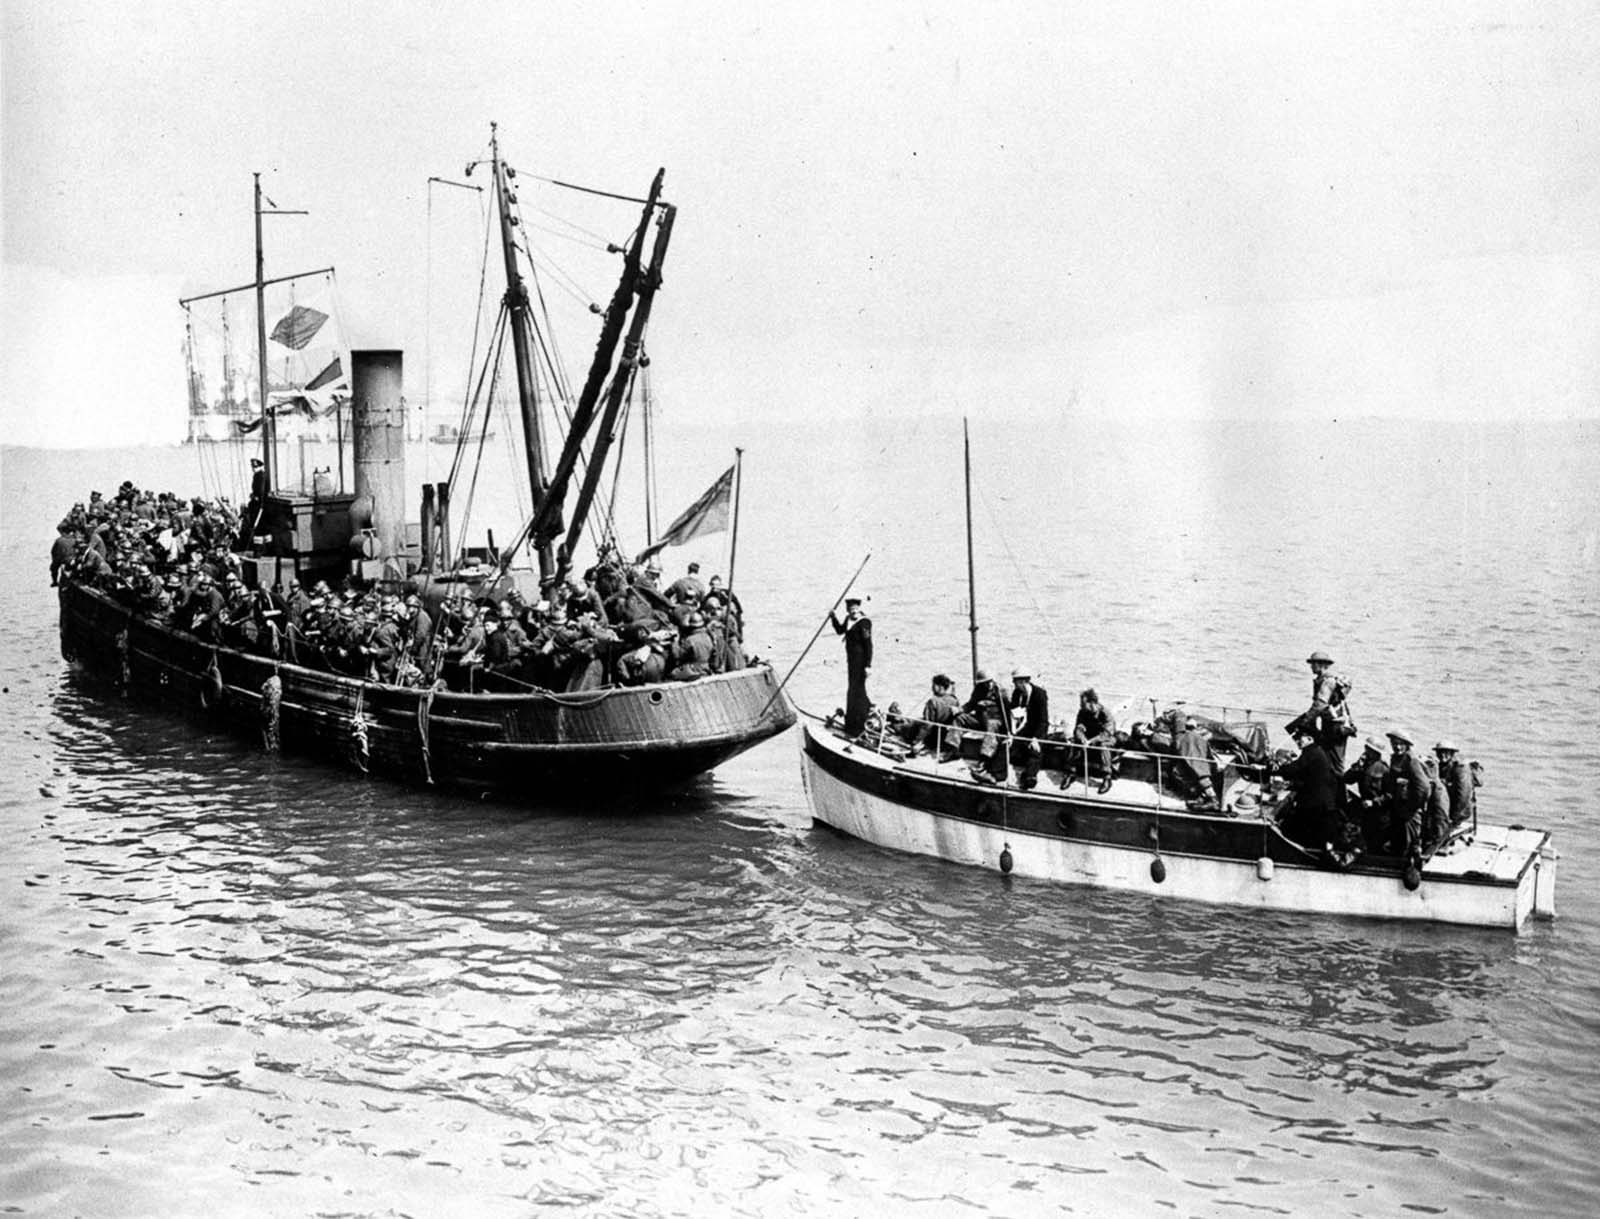 Some of the last troops to be evacuated crowd aboard two civilian boats.